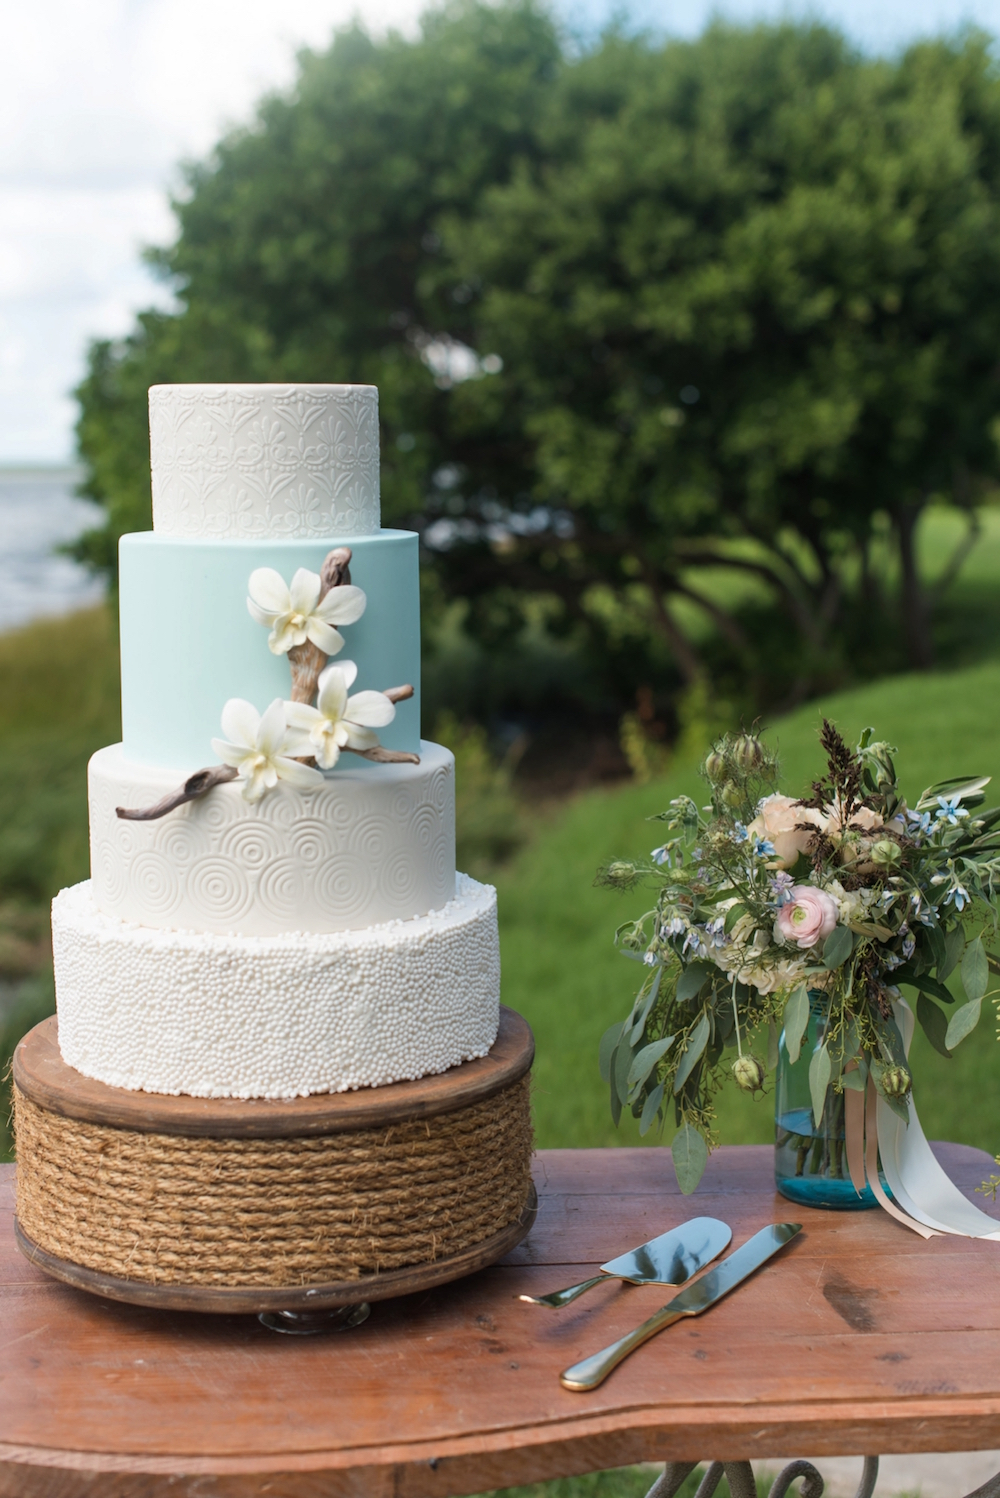 Coastal Chic Inspired Wedding Cake / photo by Caroline & Evan Photography / cake by Hands on Sweets